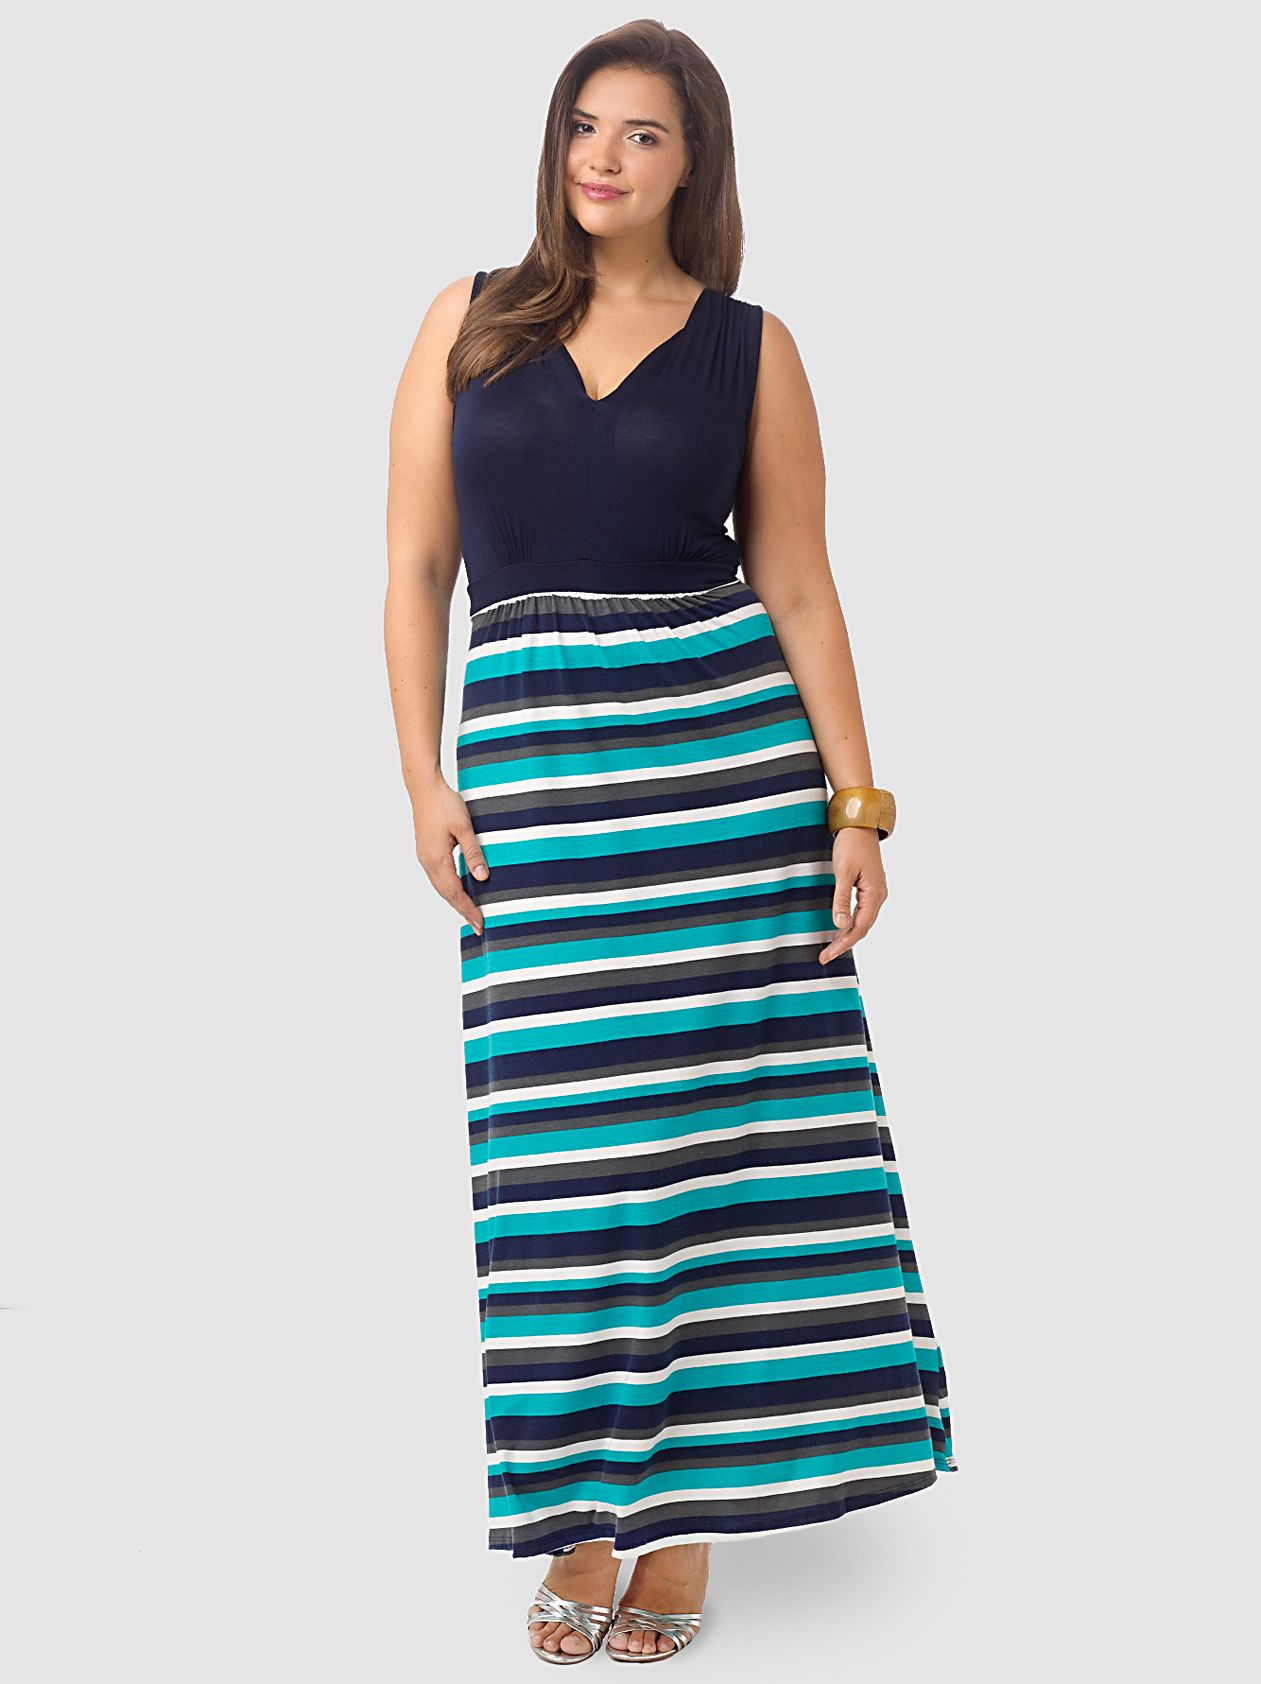 Emerson Maxi Dress In Navy Stripe By Swak Available In Sizes 1x 5x Maxi Dress Dresses Floor Length Maxi Dress [ 1684 x 1261 Pixel ]